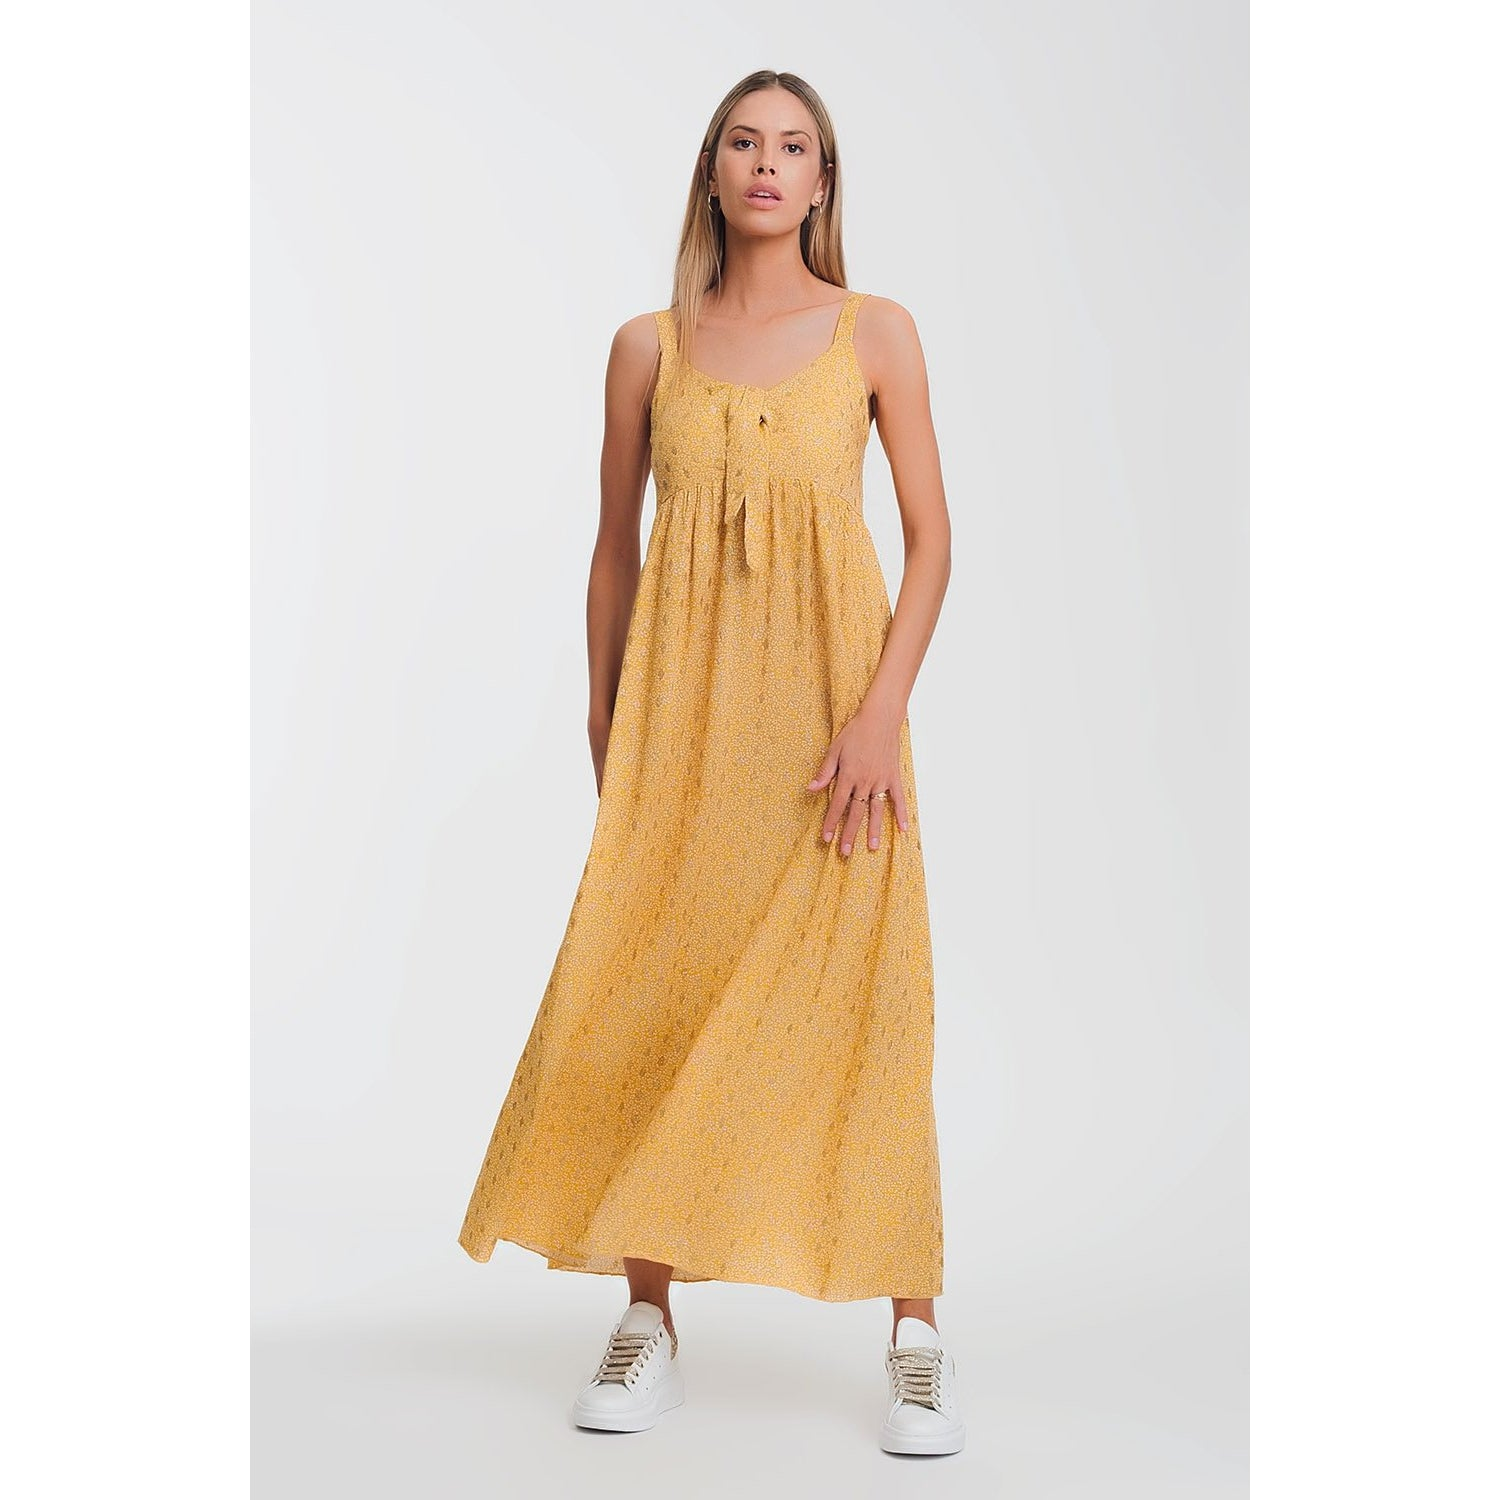 Tie-Front Maxi Yellow Dress in Floral Print - Miraposa